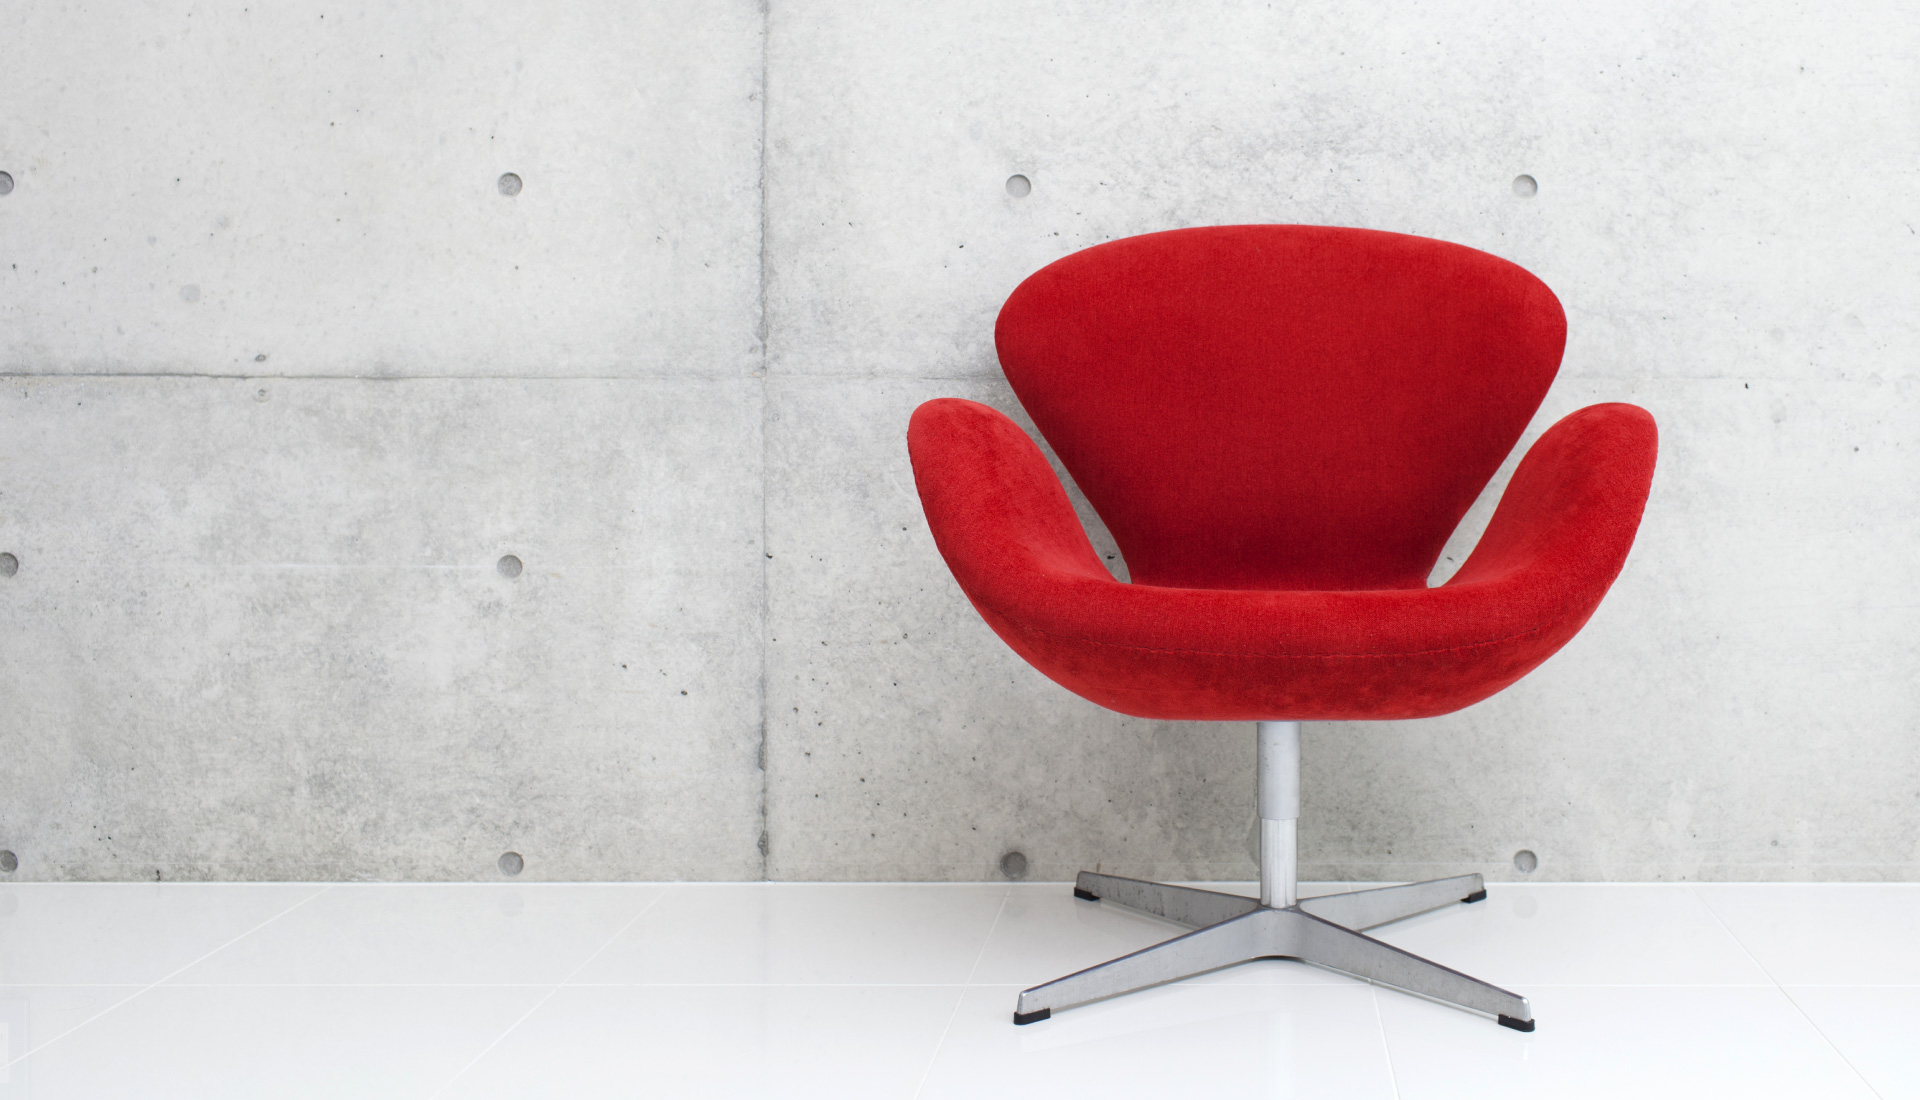 design-plus_red-chair